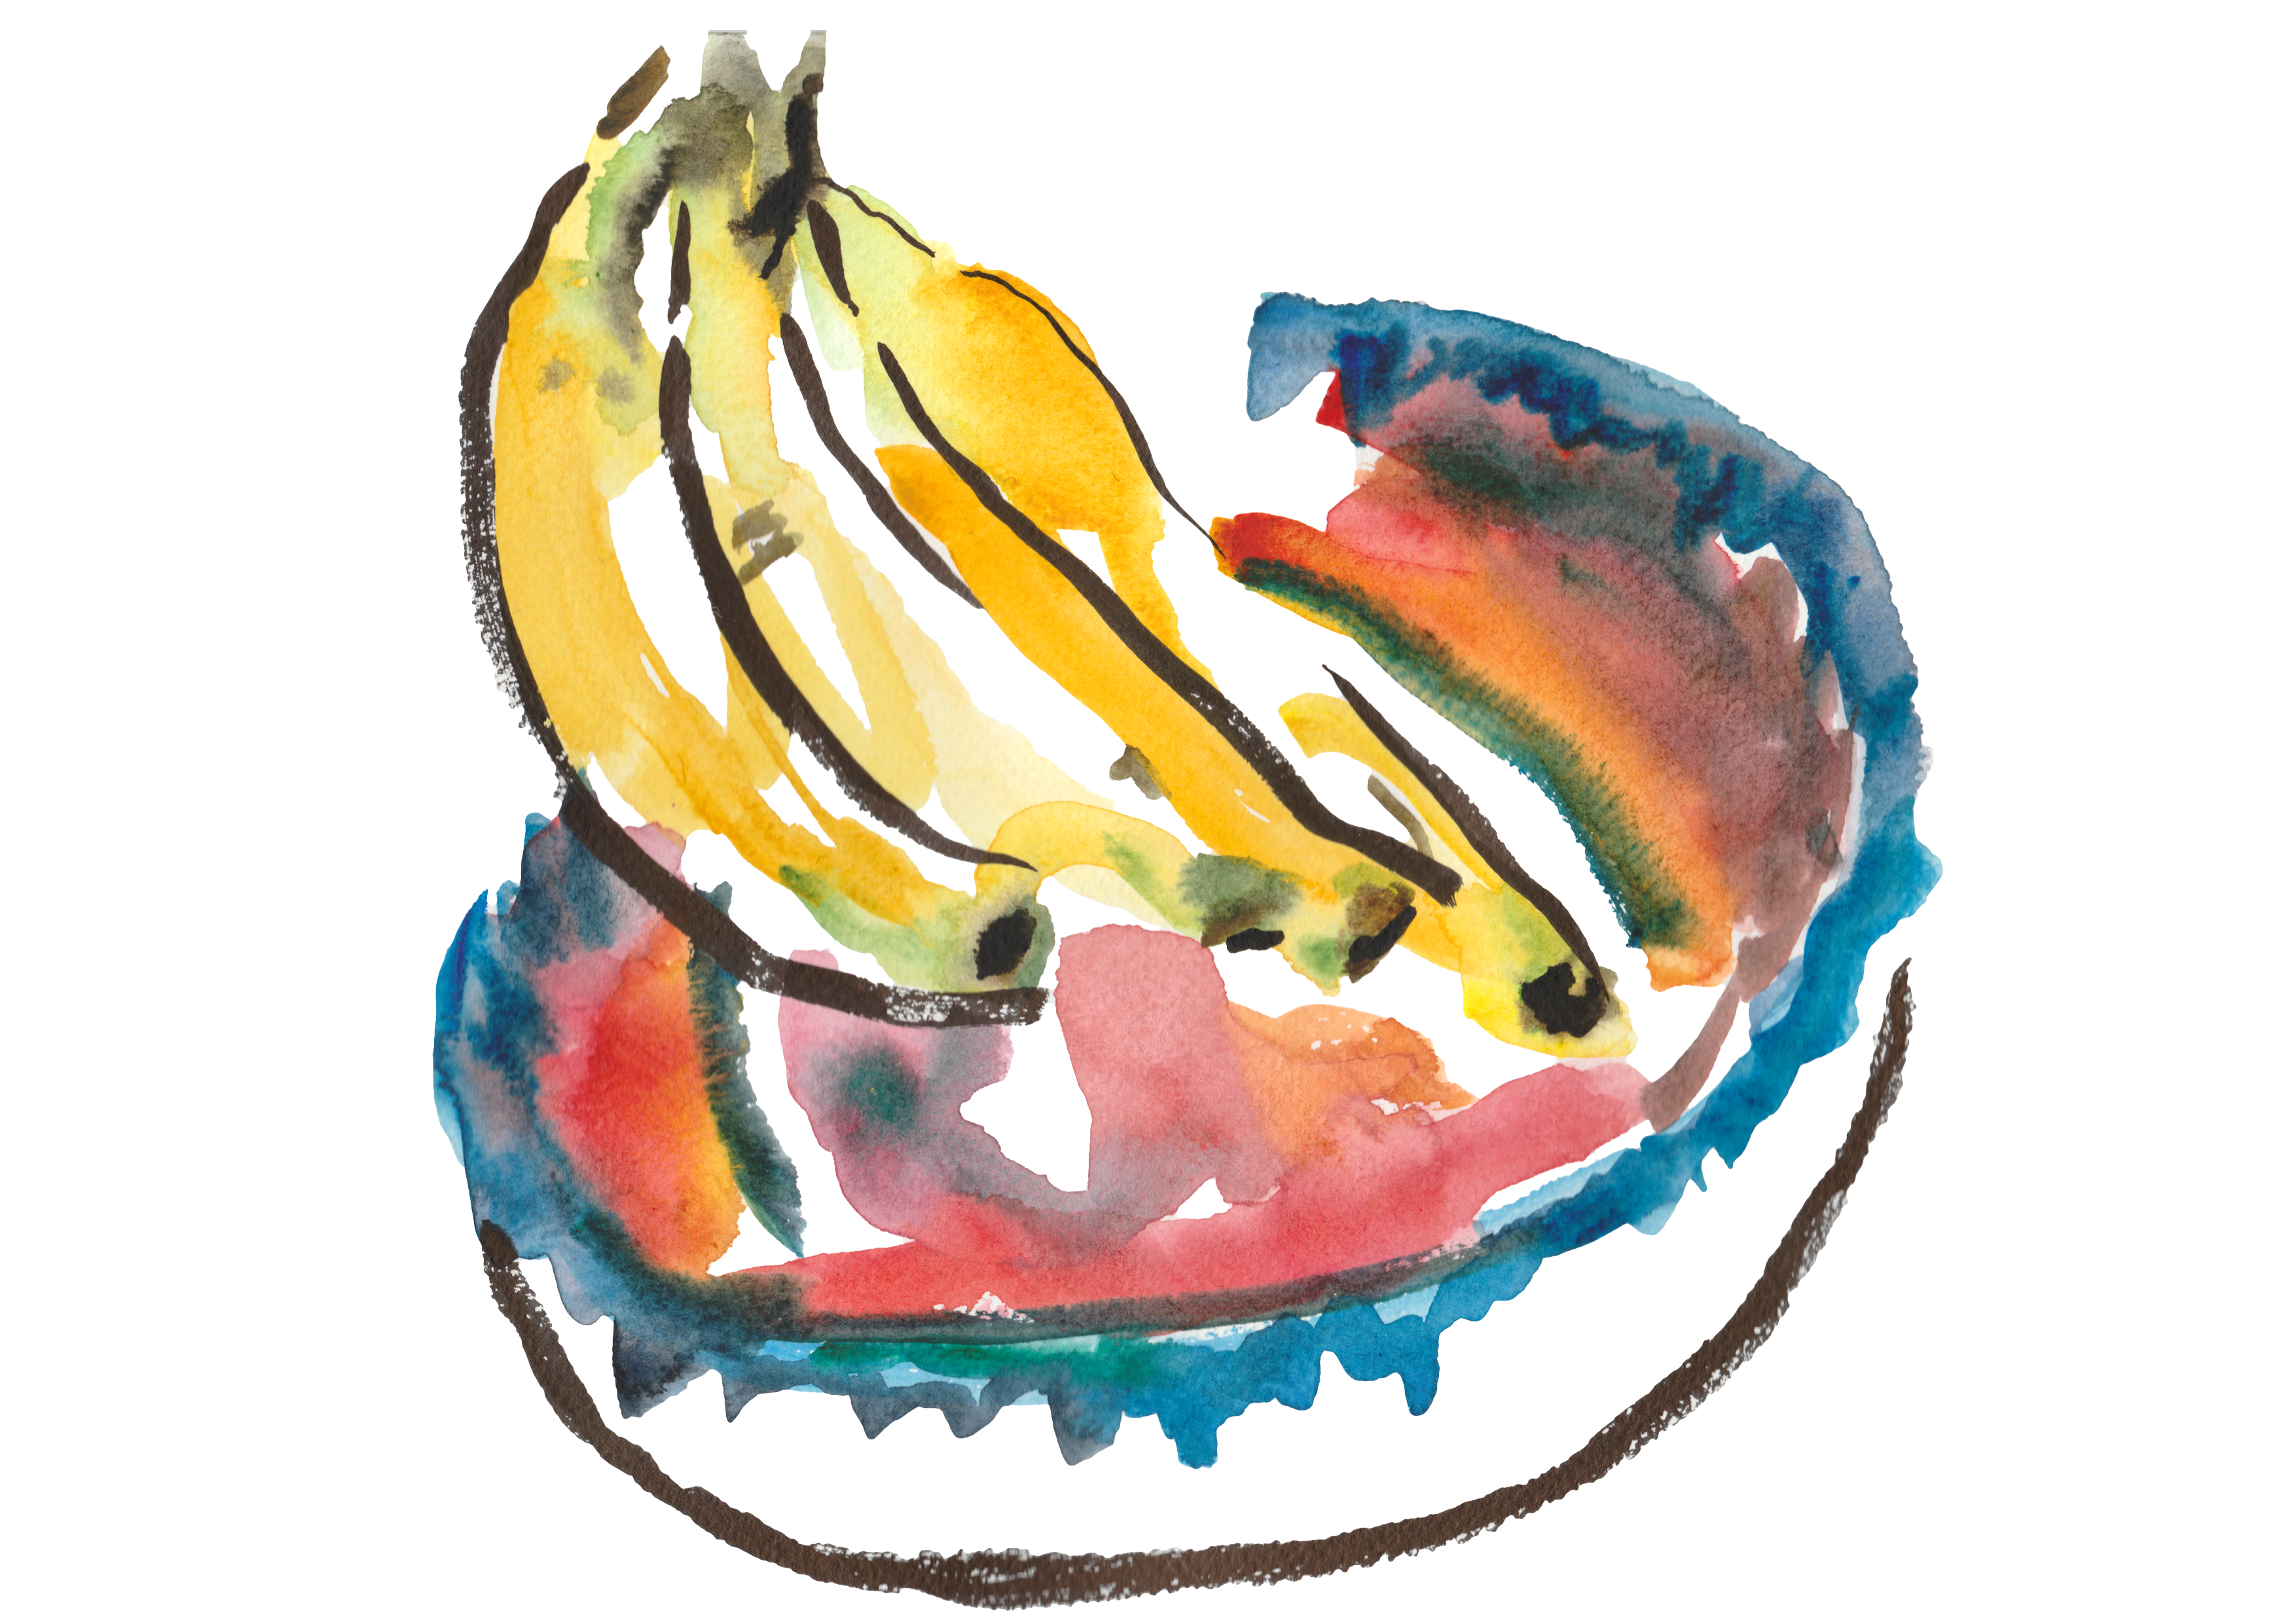 Bananas in painted bowl